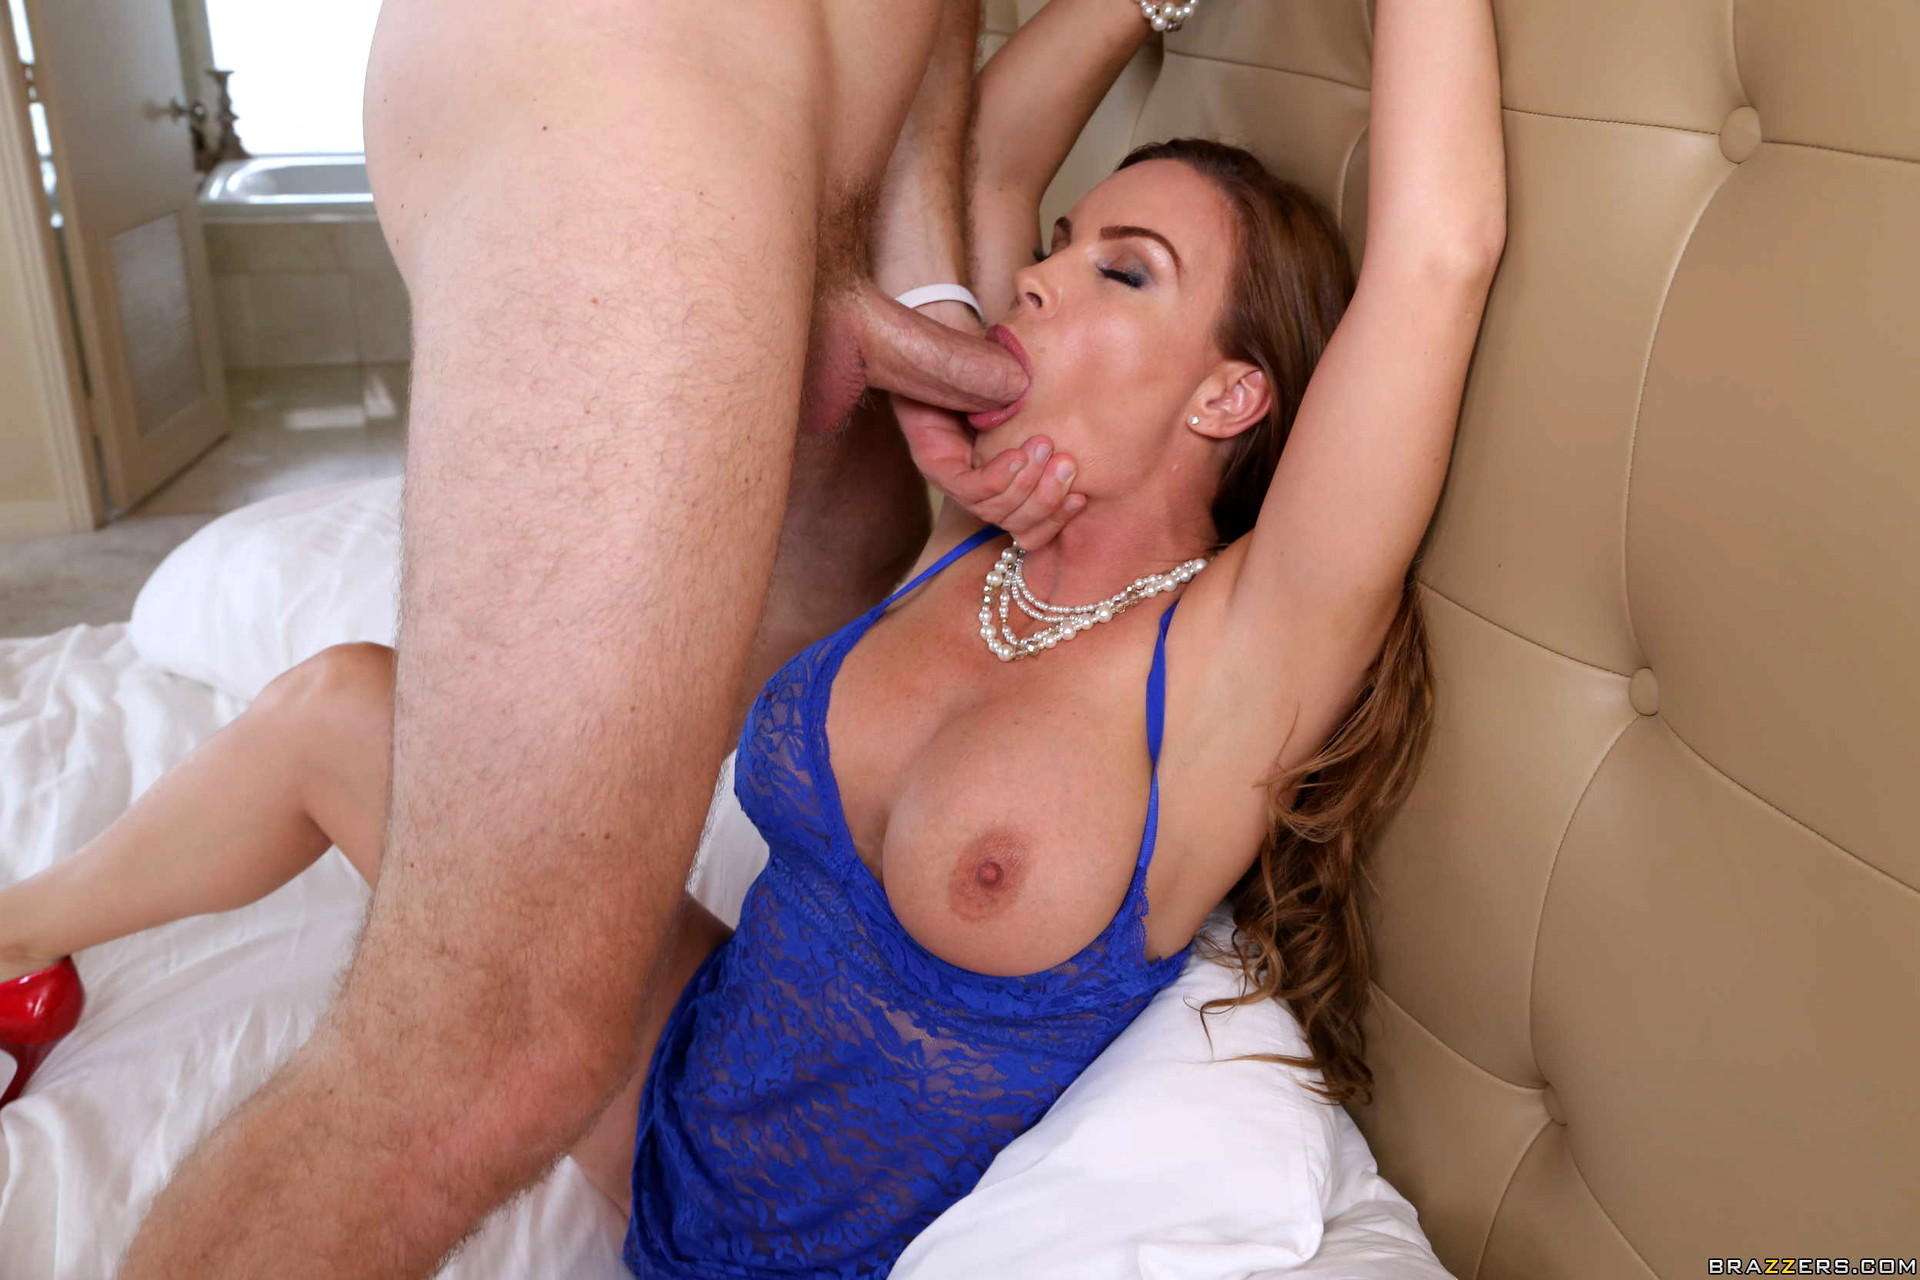 Drunk Girls Passed Out Violated Mom Xxx Picture